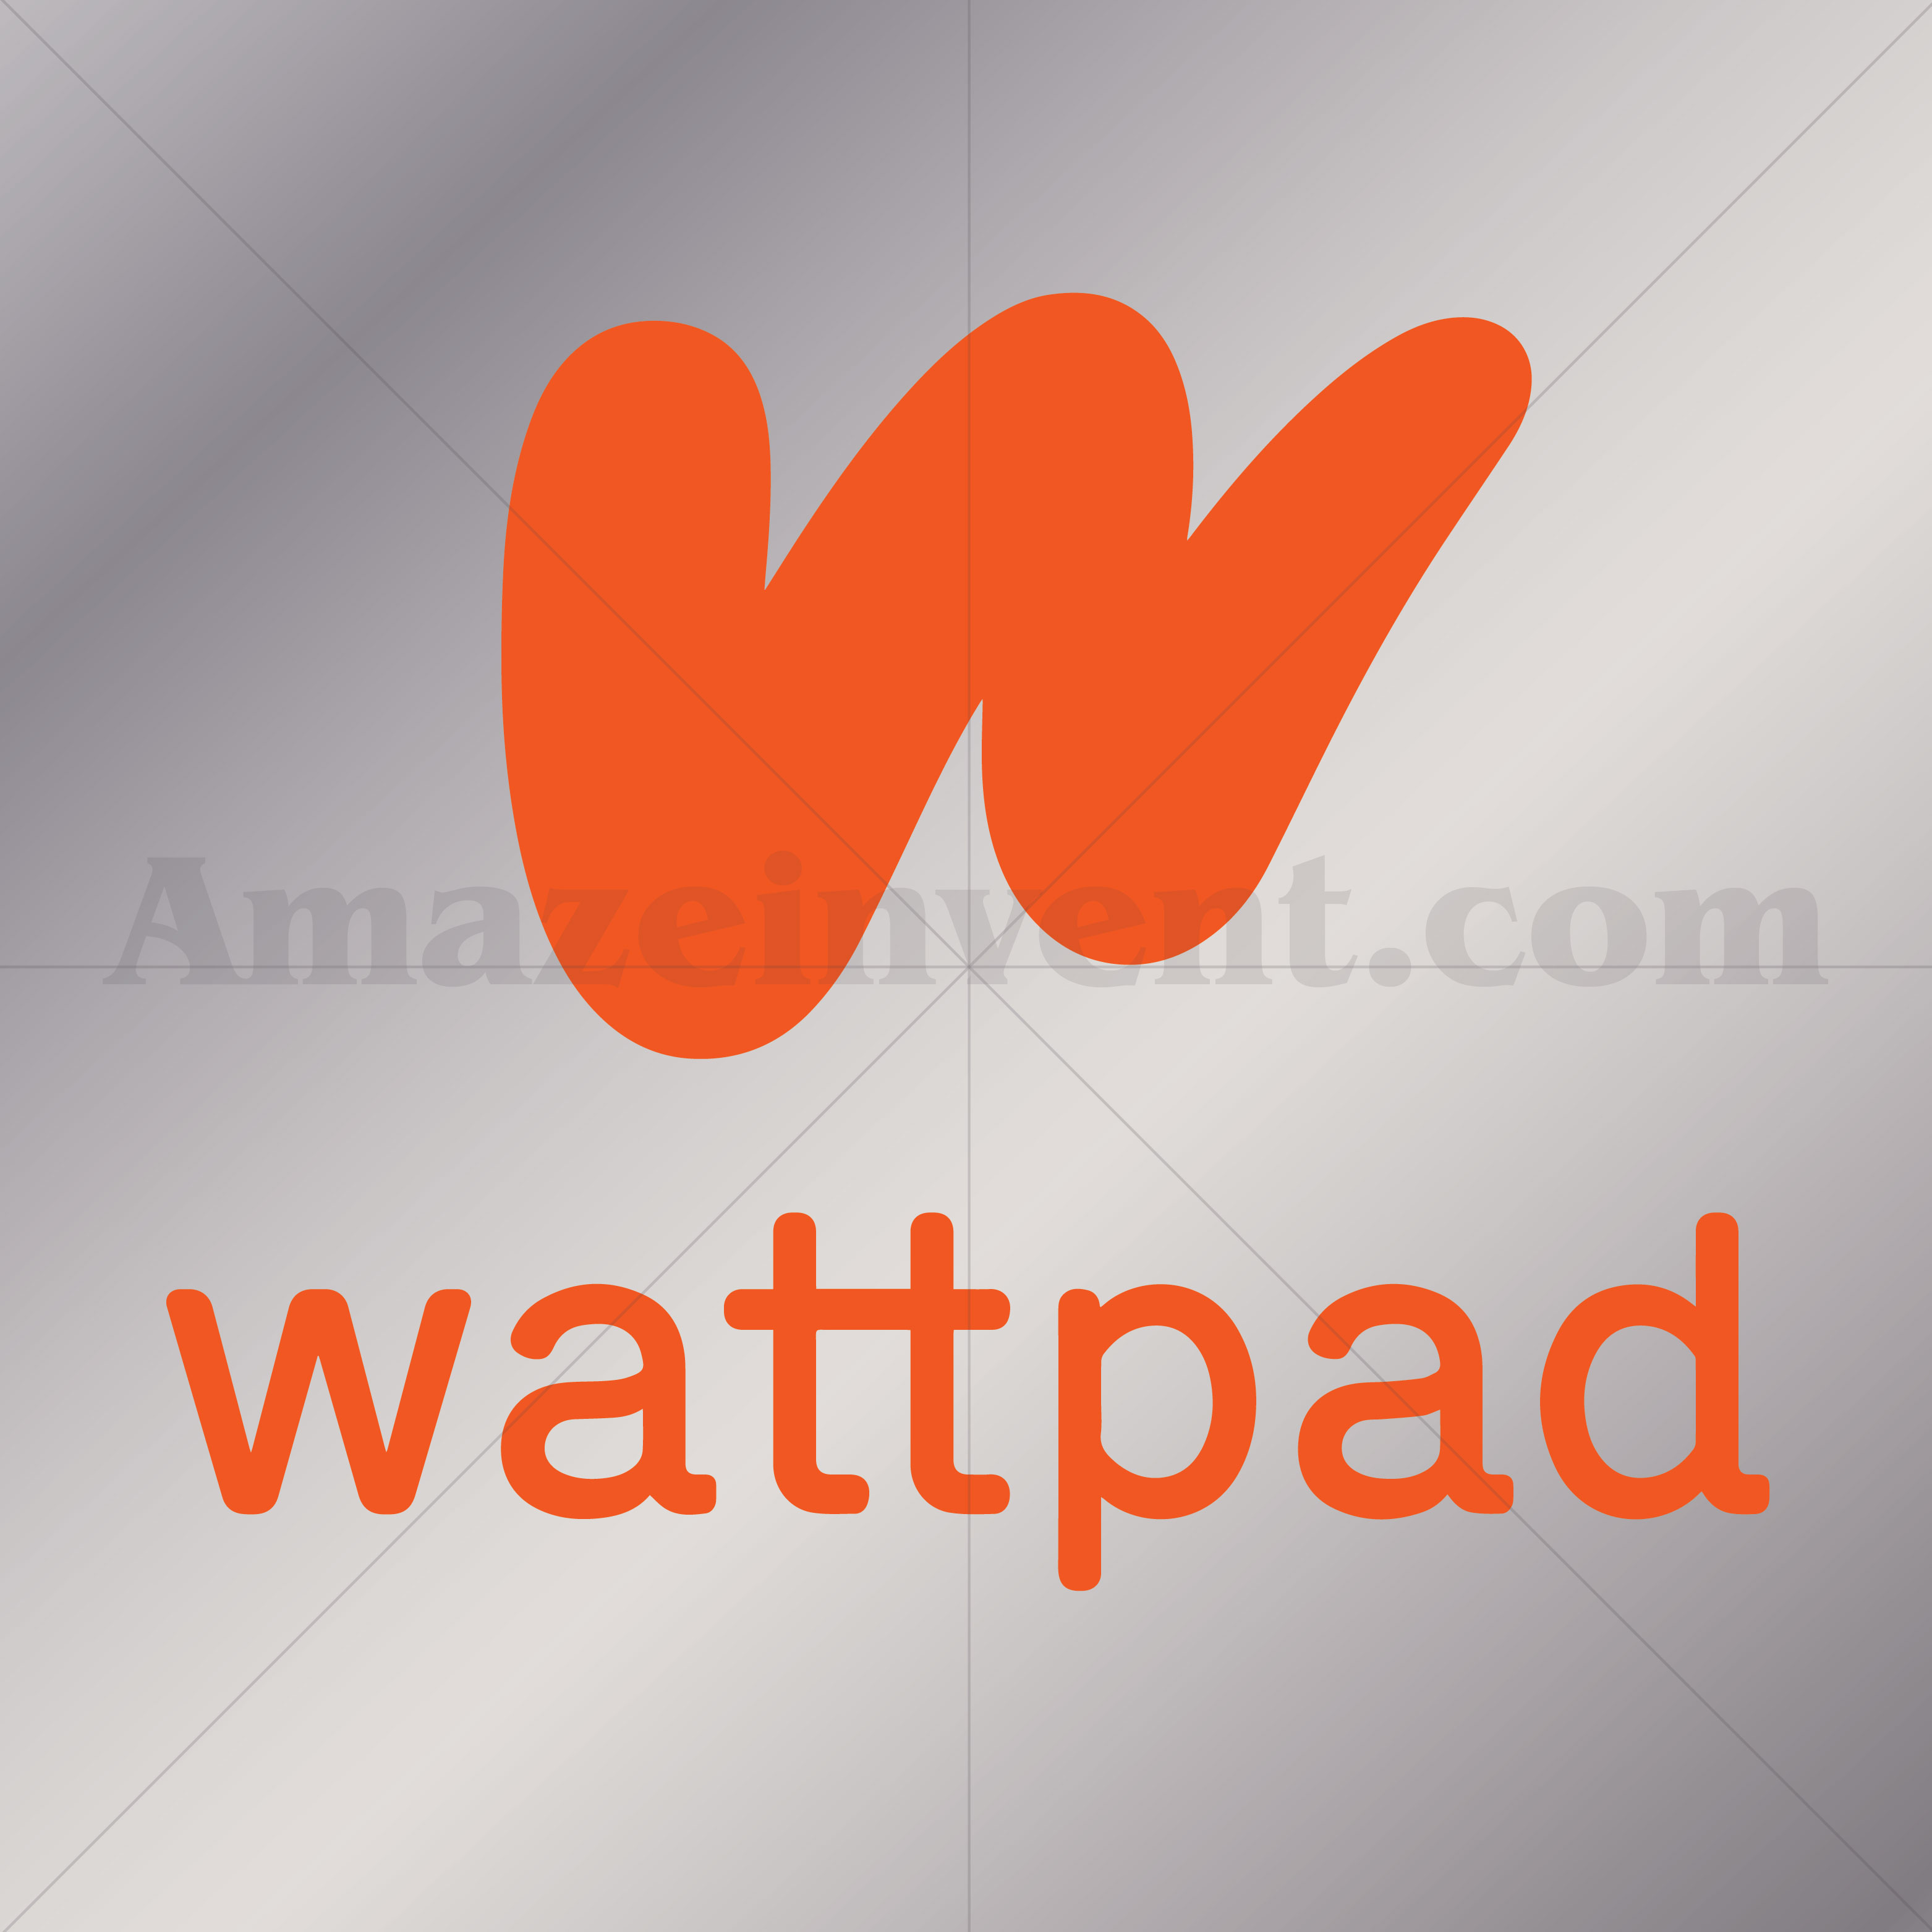 Android apps wattpad